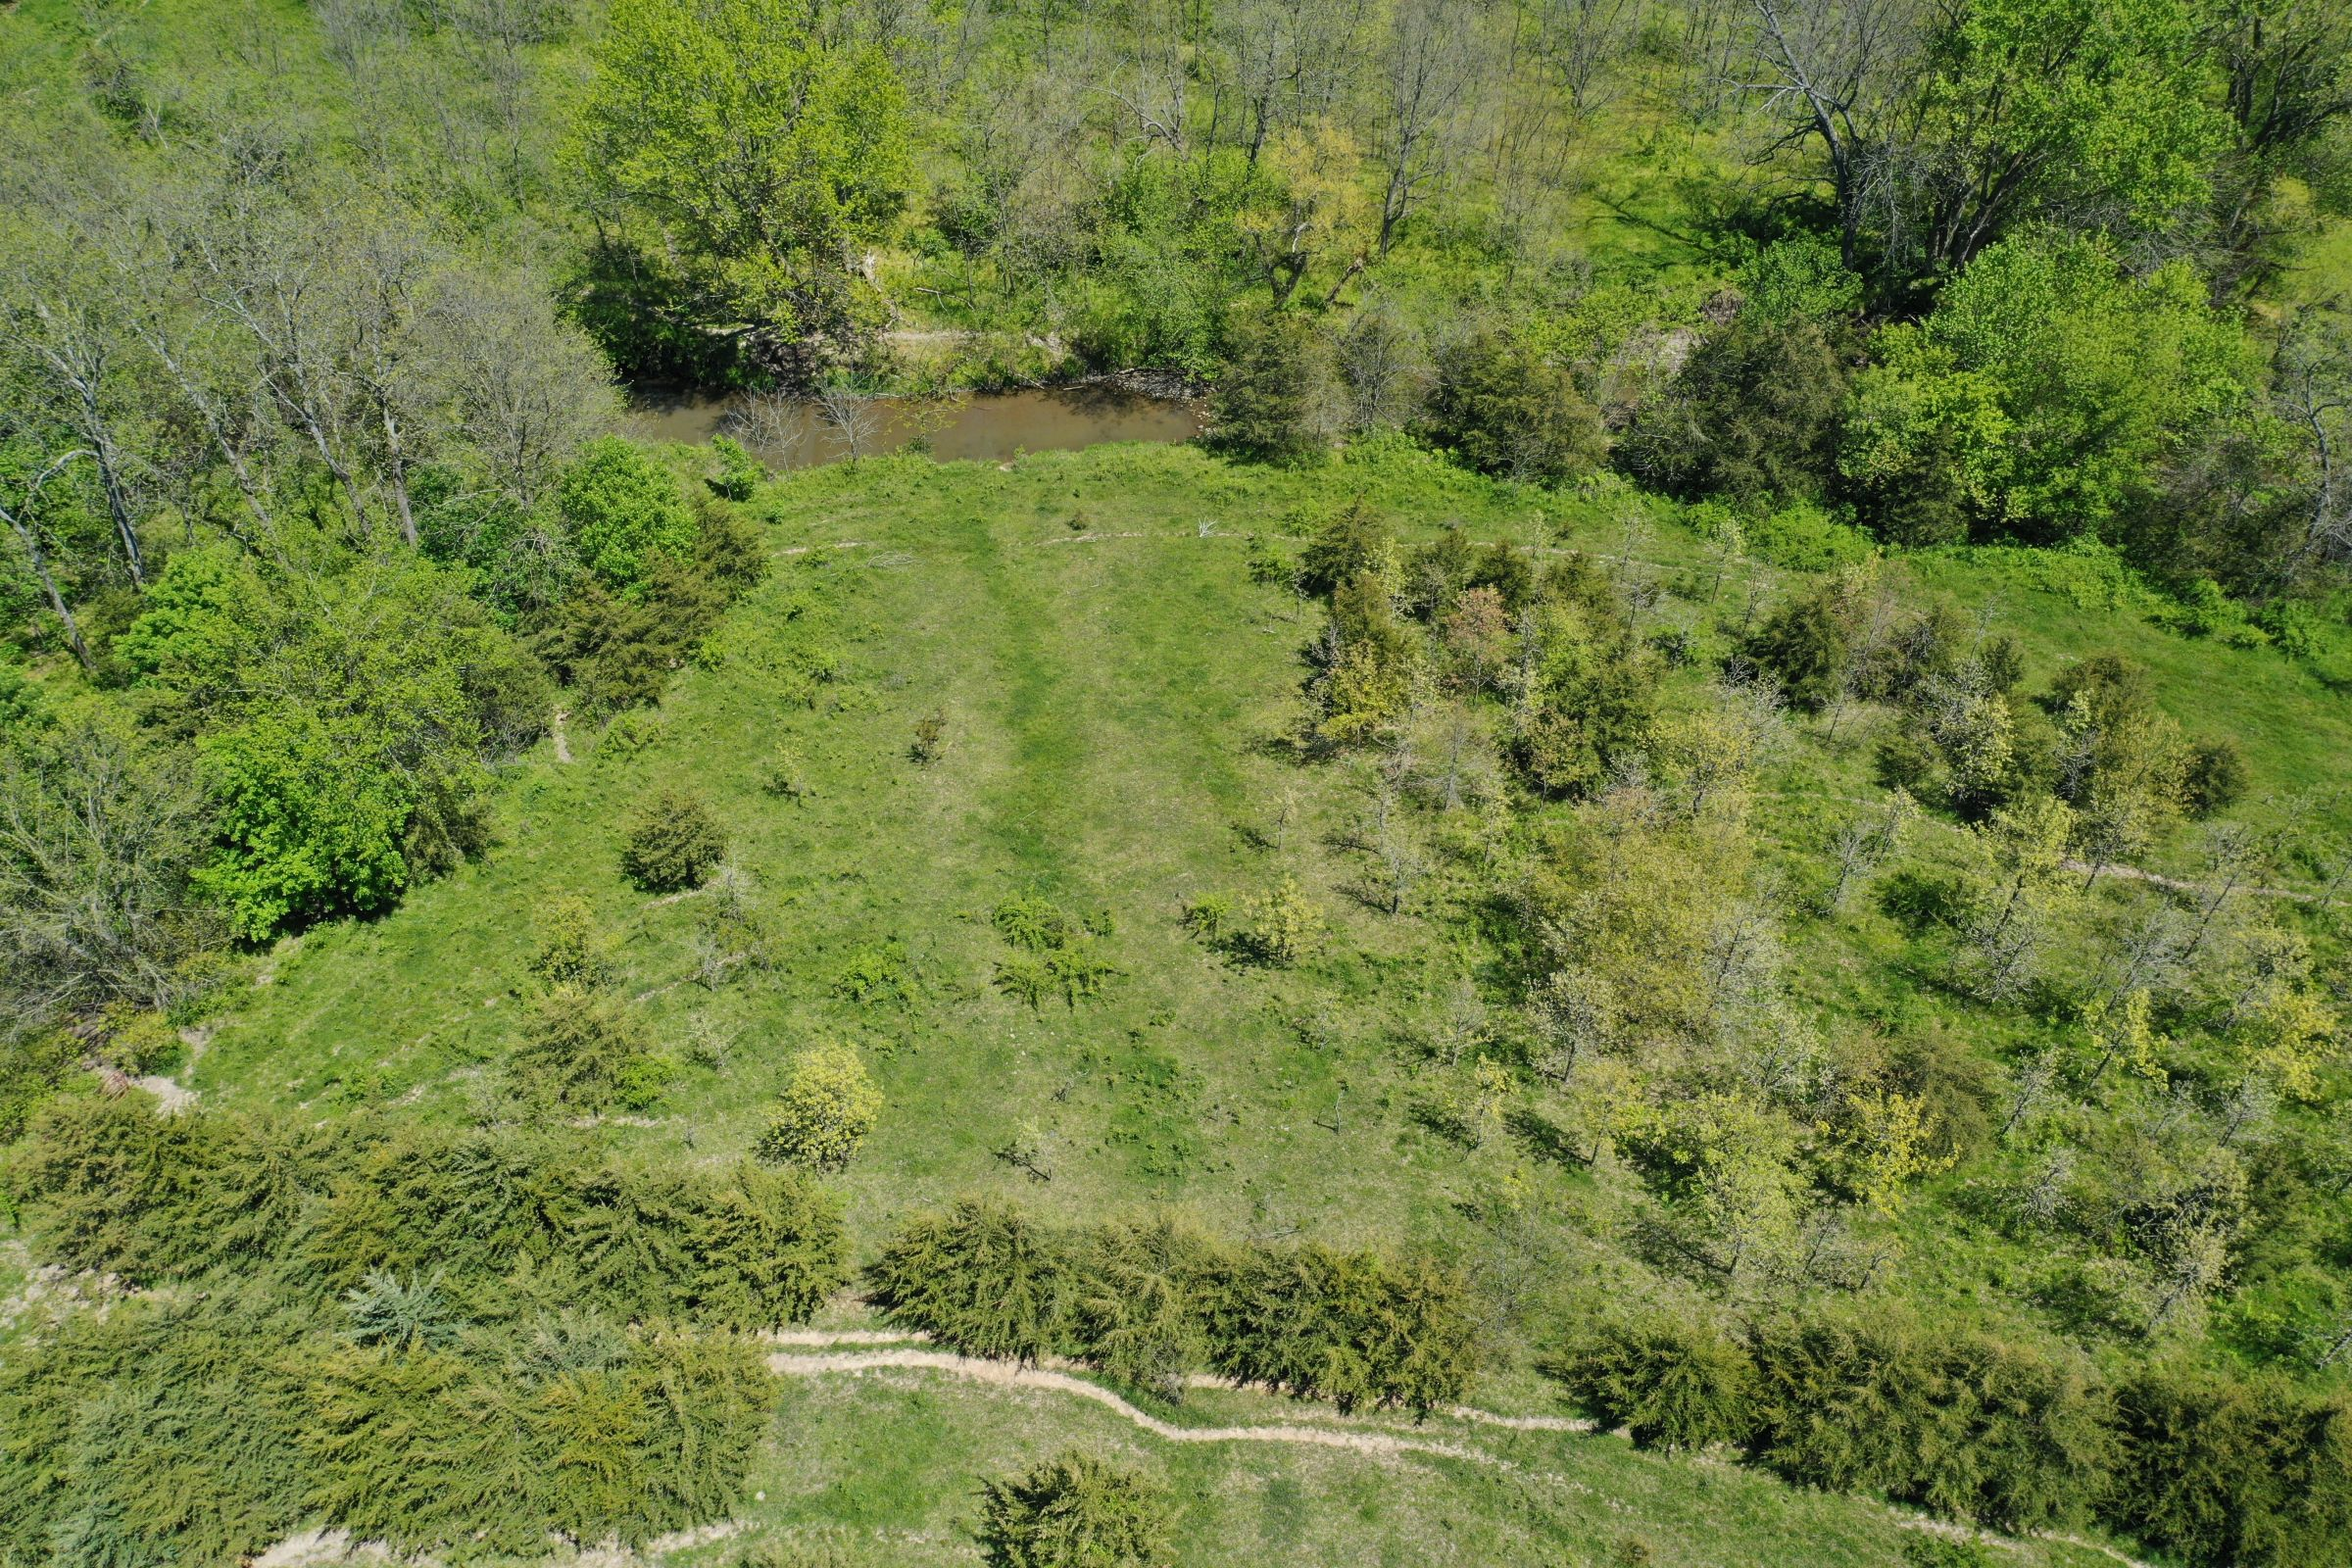 land-decatur-county-iowa-99-acres-listing-number-15525-5-2021-05-14-174323.JPG